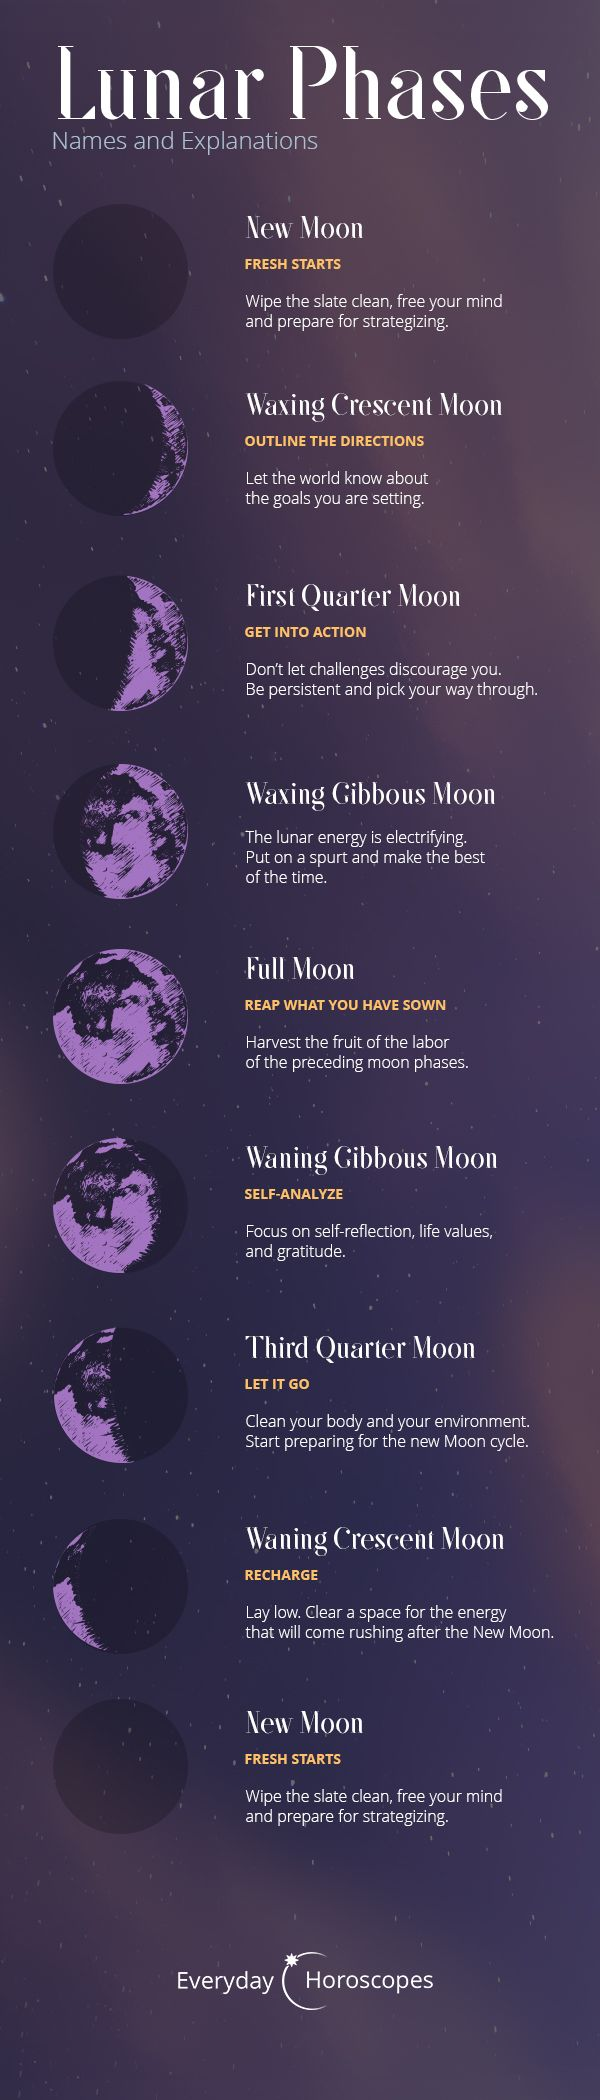 Use the power of the Moon!